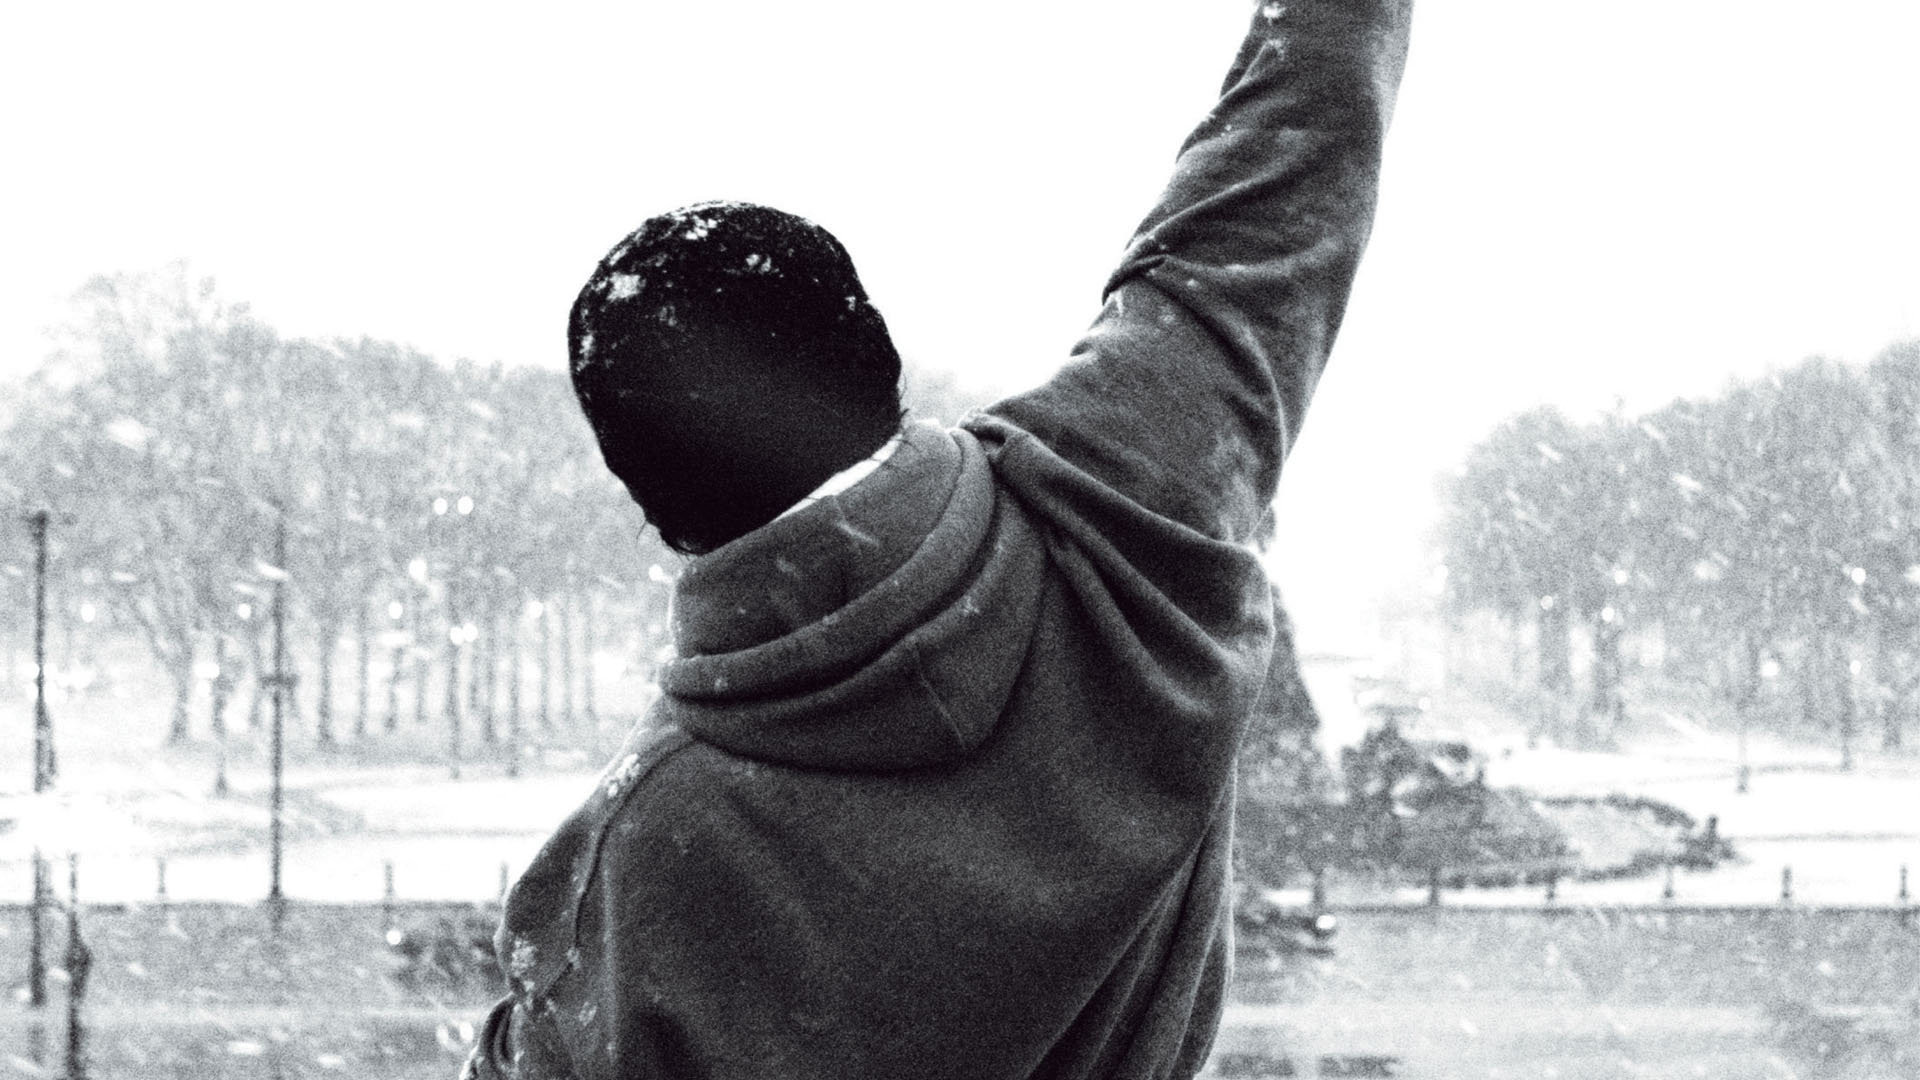 7 Rocky Balboa Wallpapers HD  Wallpaper Abyss